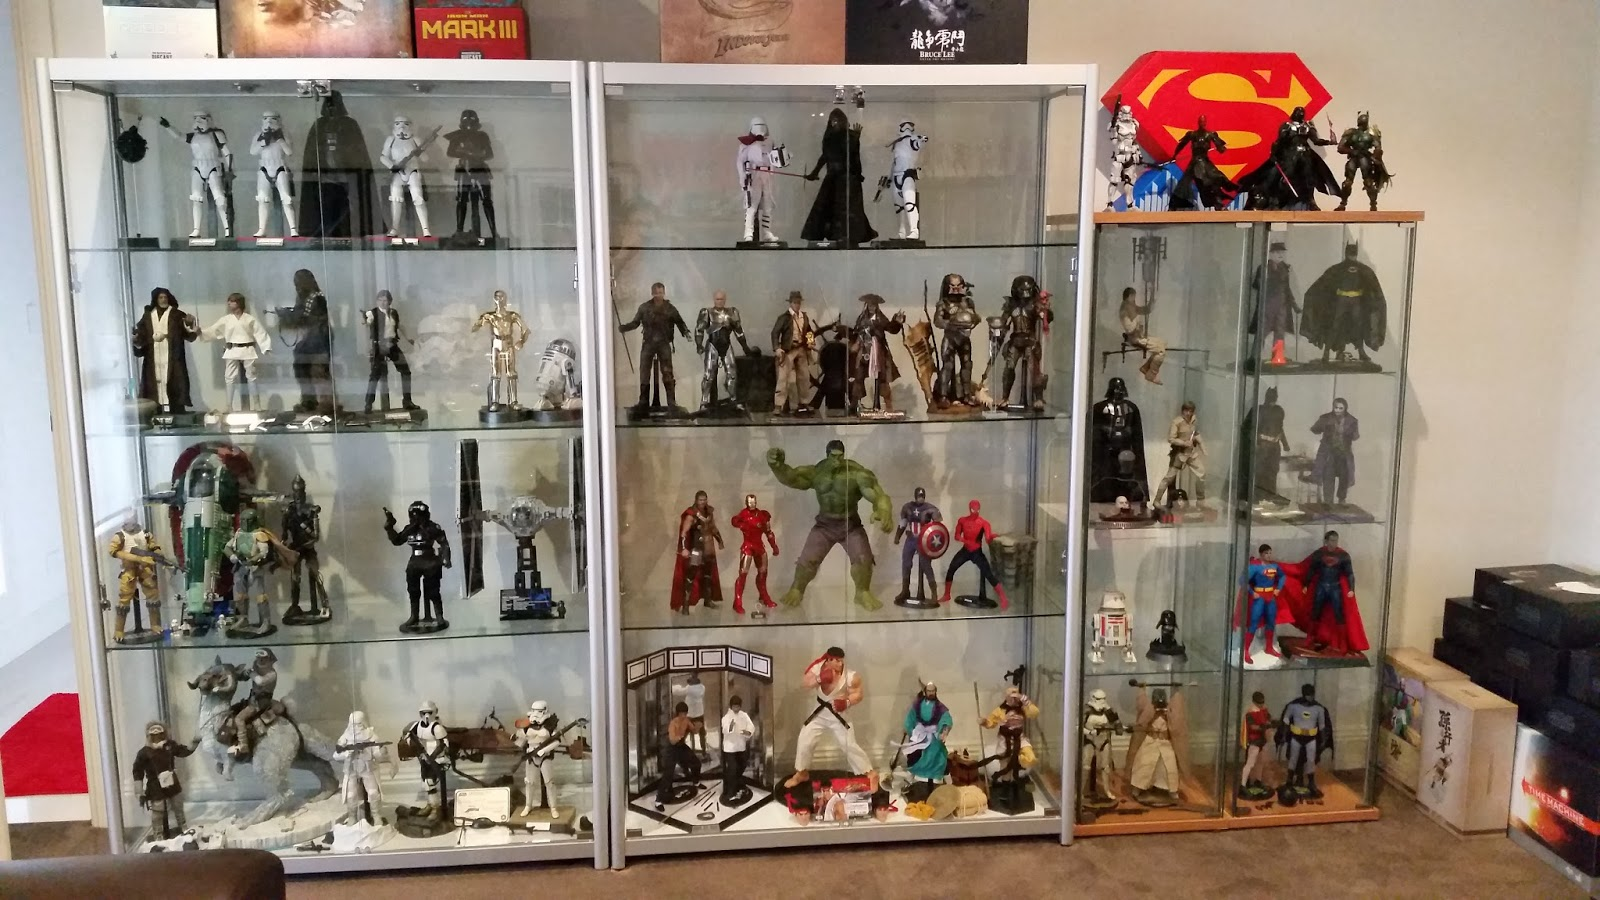 For The Low Wide Cabinet That I Had From A Couple Of Years Ago, I Reserved  Room For The New Hot Toys Delorean. I Never Got The Hot Toys Batmobile  Which Is ...